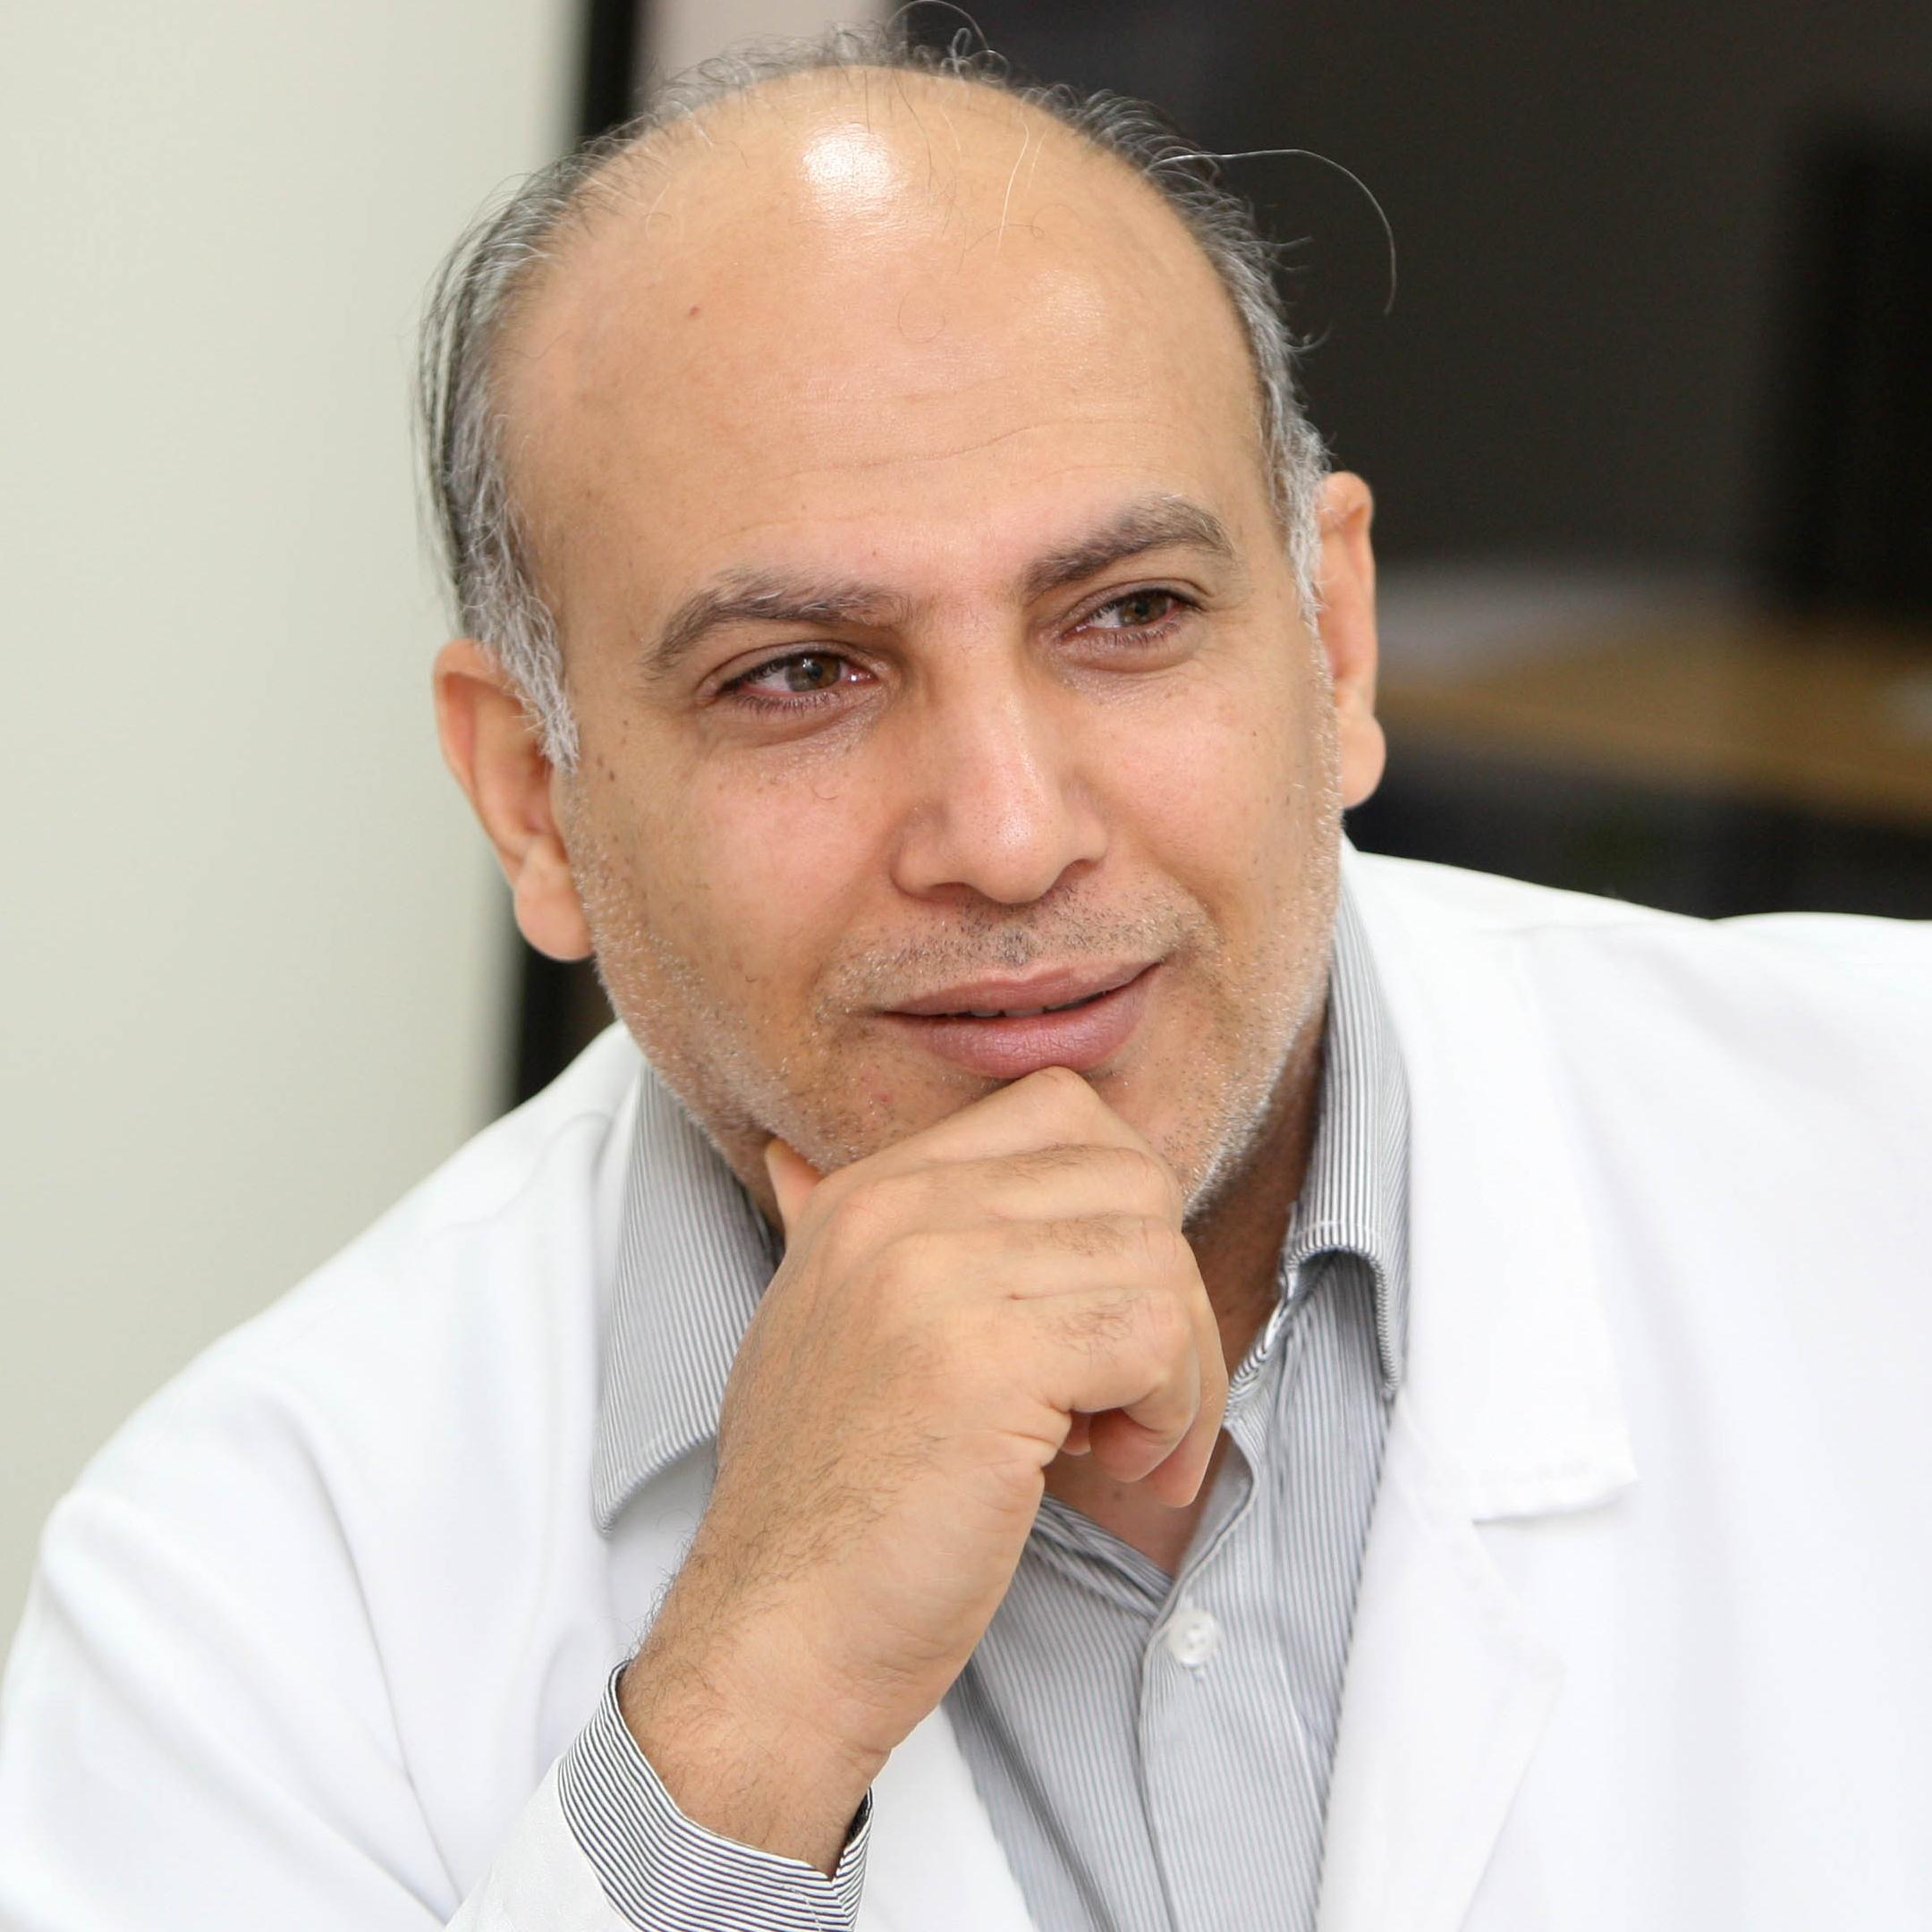 Dr. Moataz photo .jpg